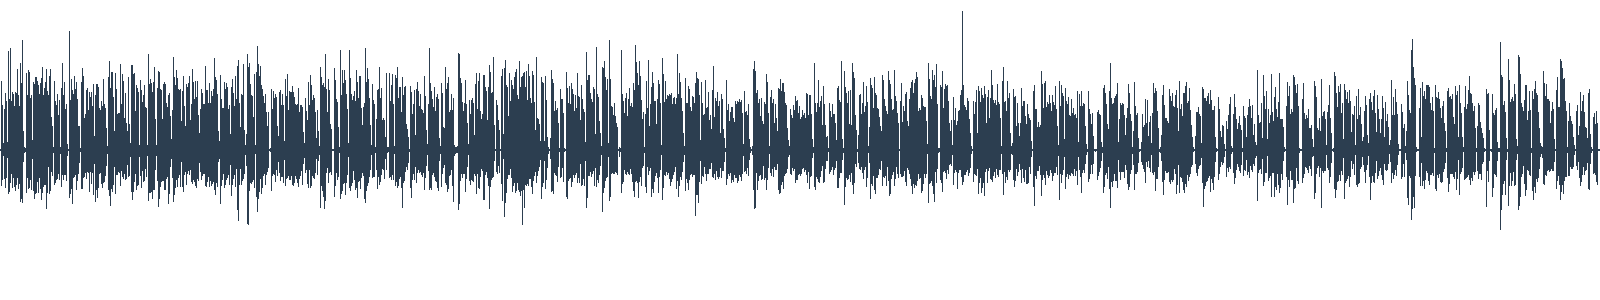 Slon mizne waveform